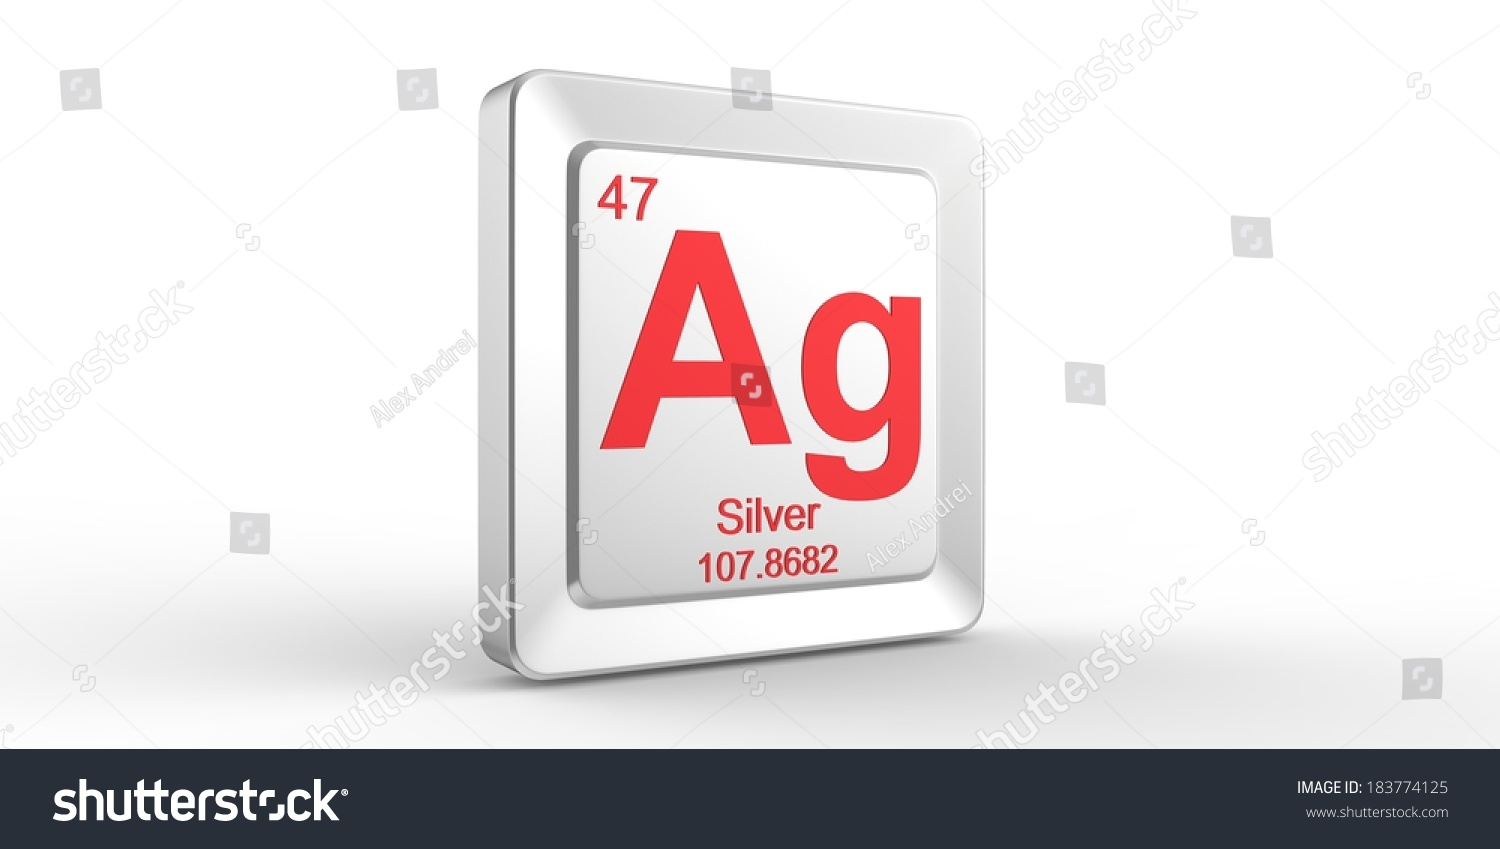 Ag symbol 47 material silver chemical stock illustration 183774125 ag symbol 47 material for silver chemical element of the periodic table buycottarizona